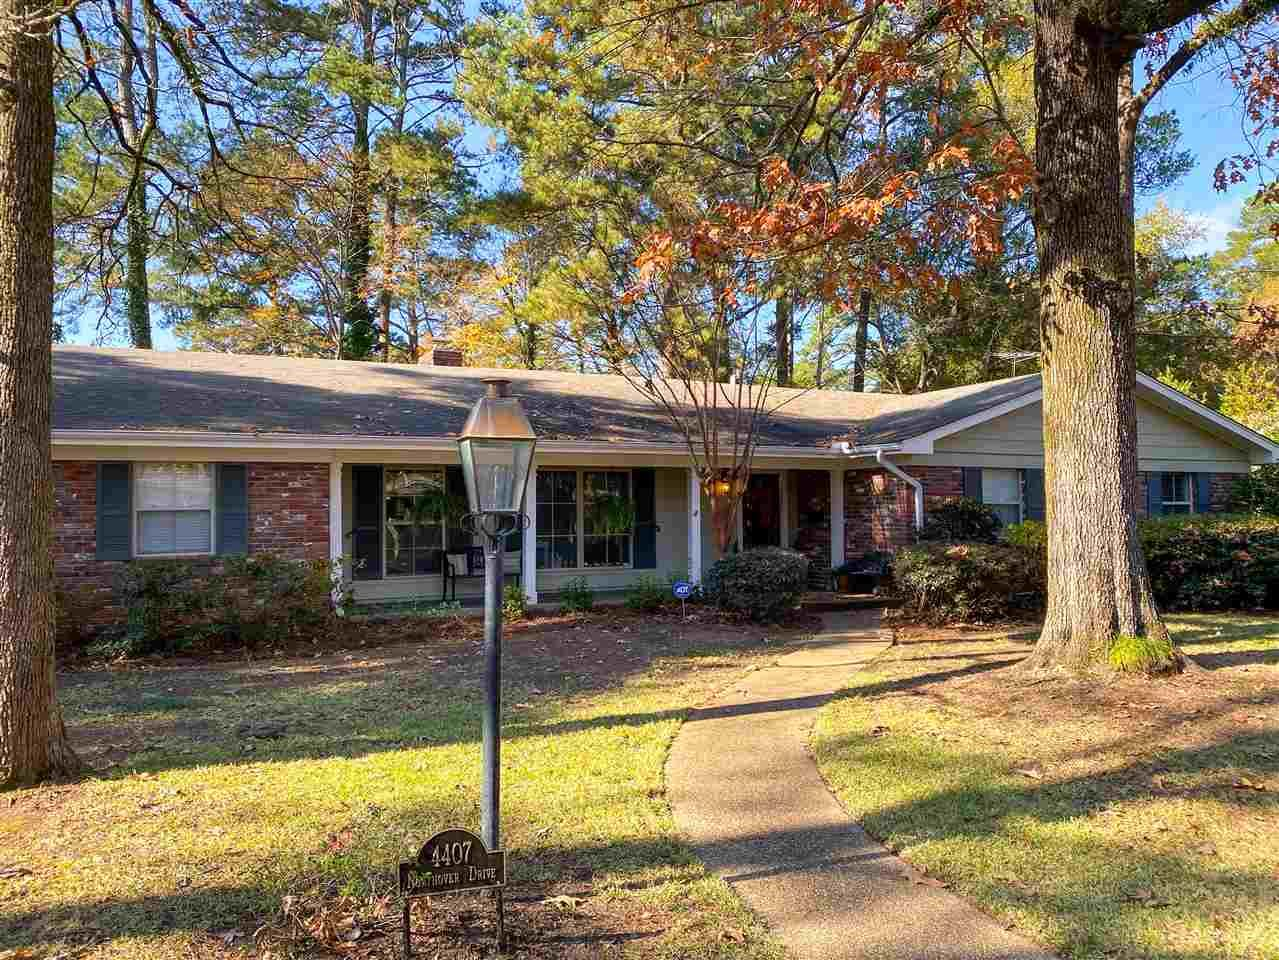 4407 NORTHOVER DR, Jackson, MS 39211 - MLS#: 336332